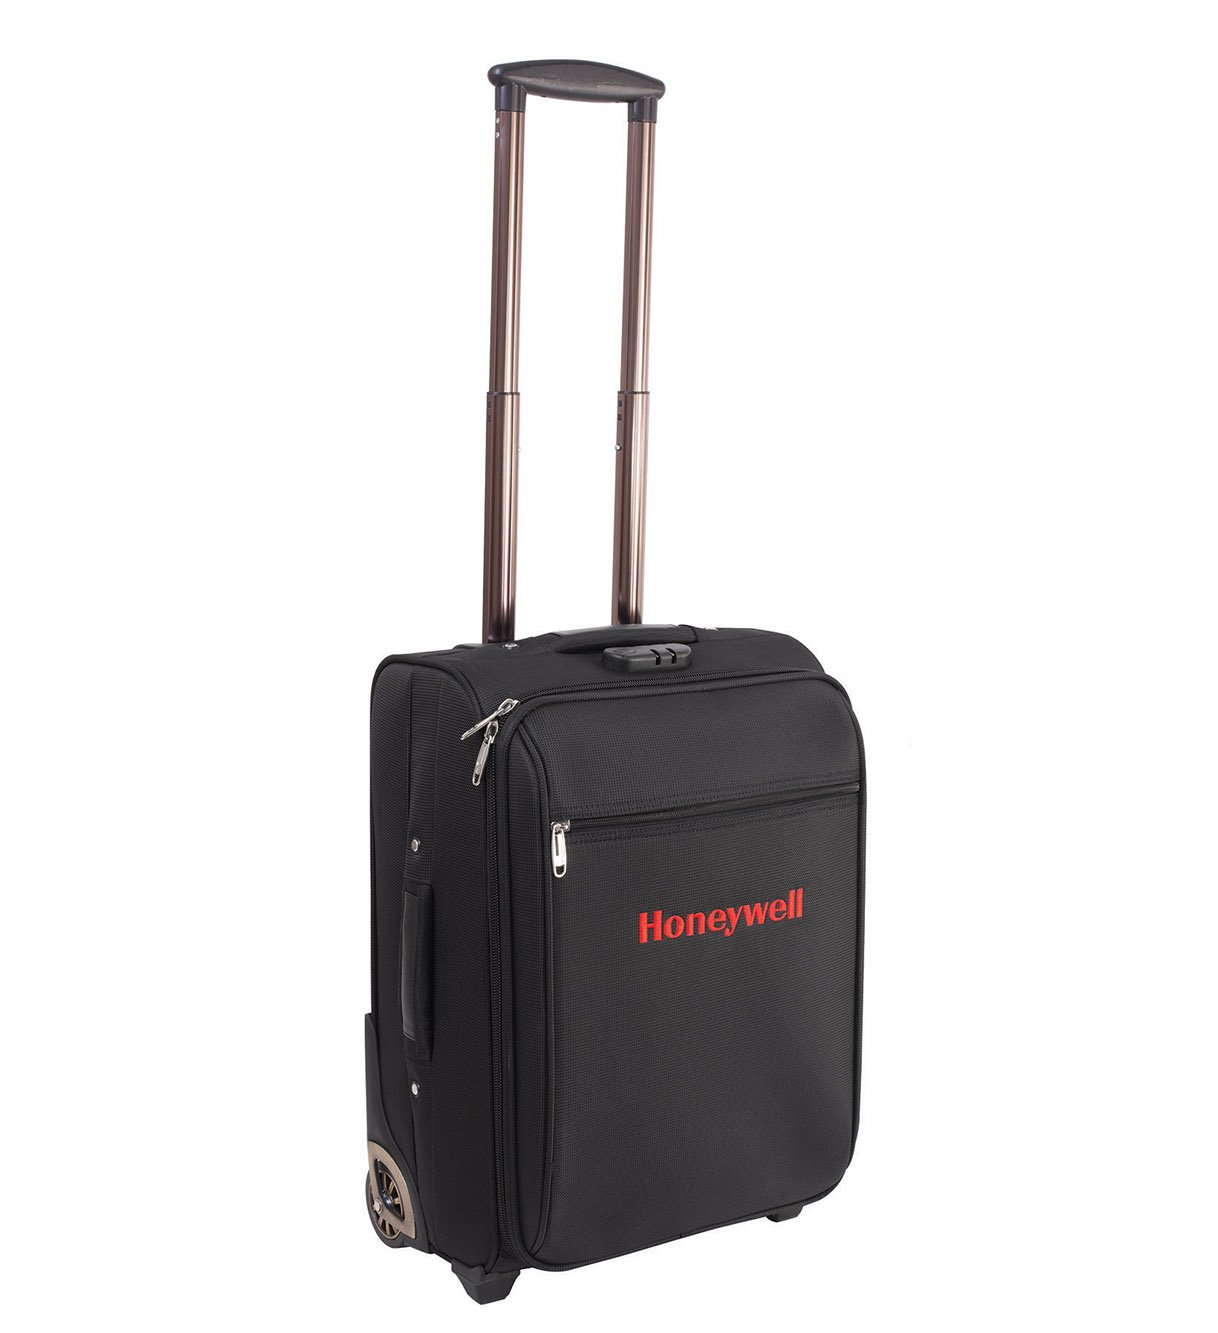 vseries-carrying-case